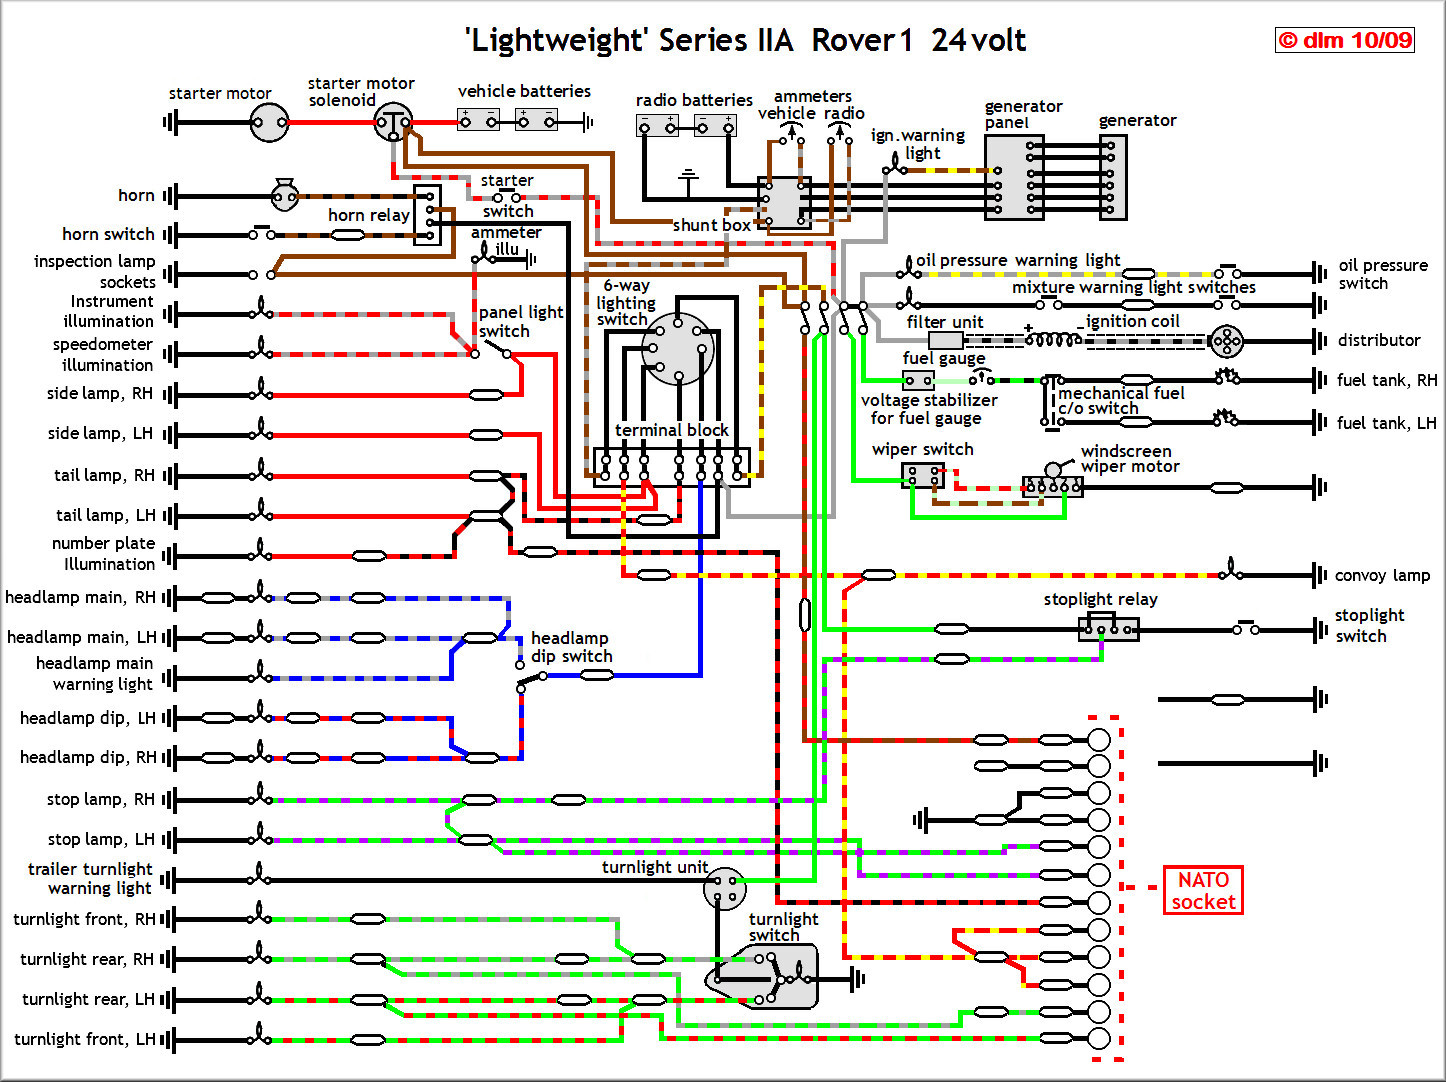 71 exmod wiring i used one of the other diagrams as a starting point for my 12 volt wiring harness if not check the other diagrams on the site